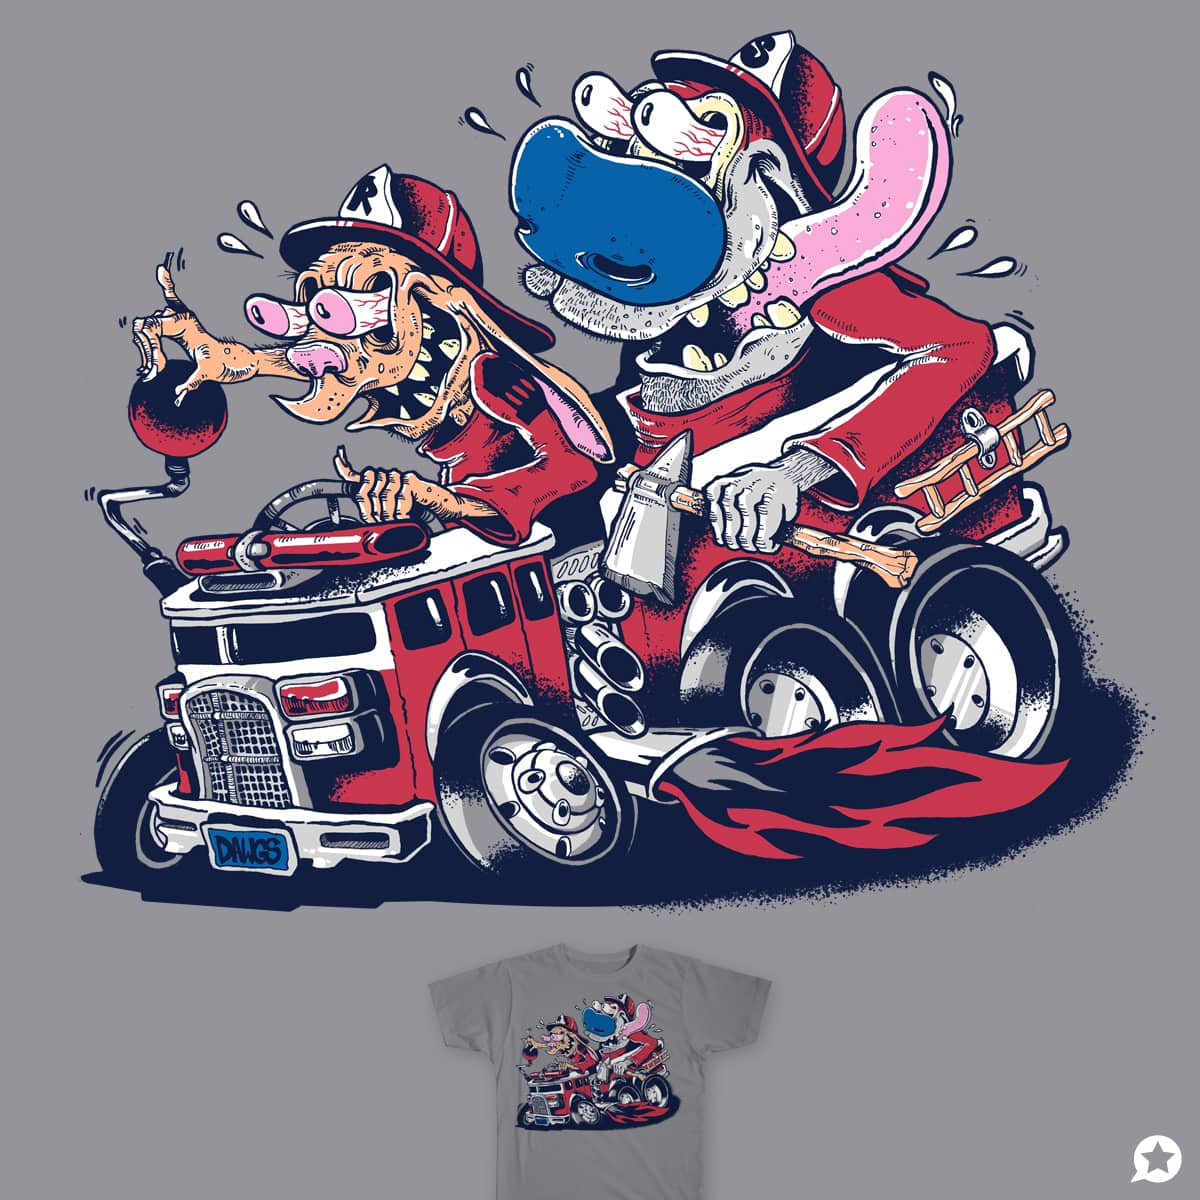 fire dogs by dbolinski on Threadless